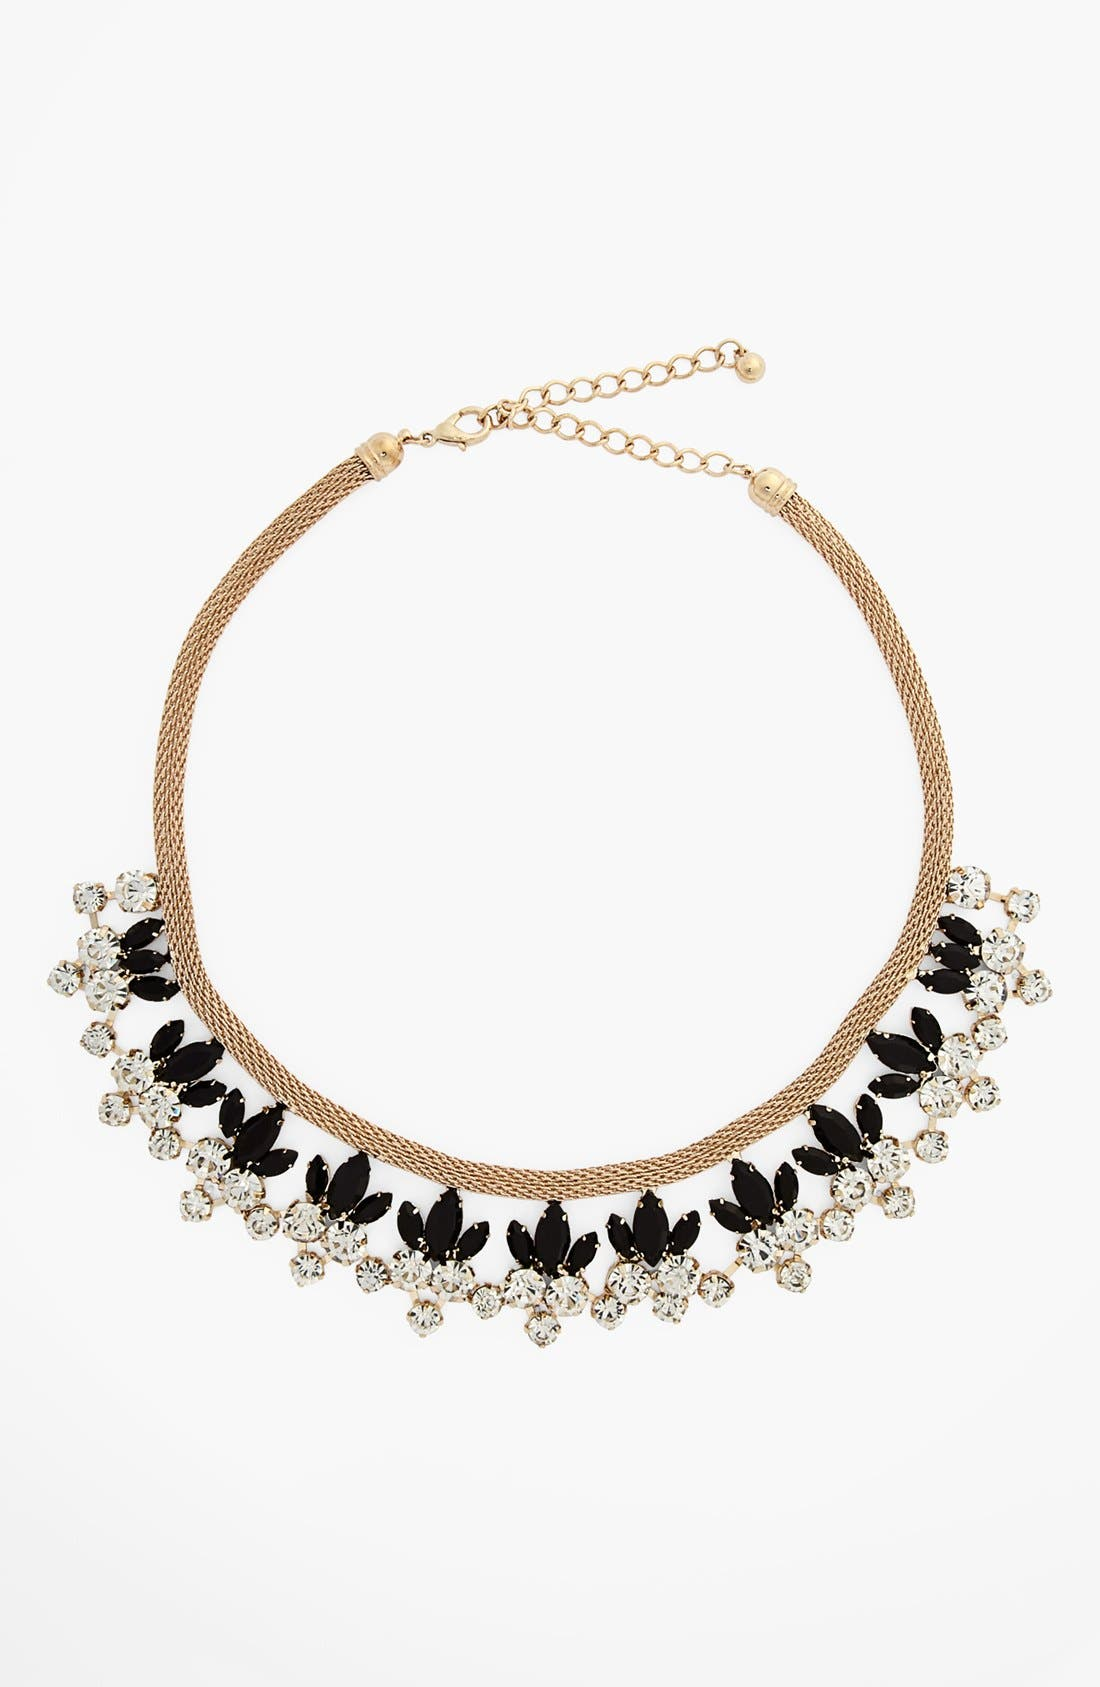 NATASHA COUTURE Floral Statement Necklace, Main, color, 001